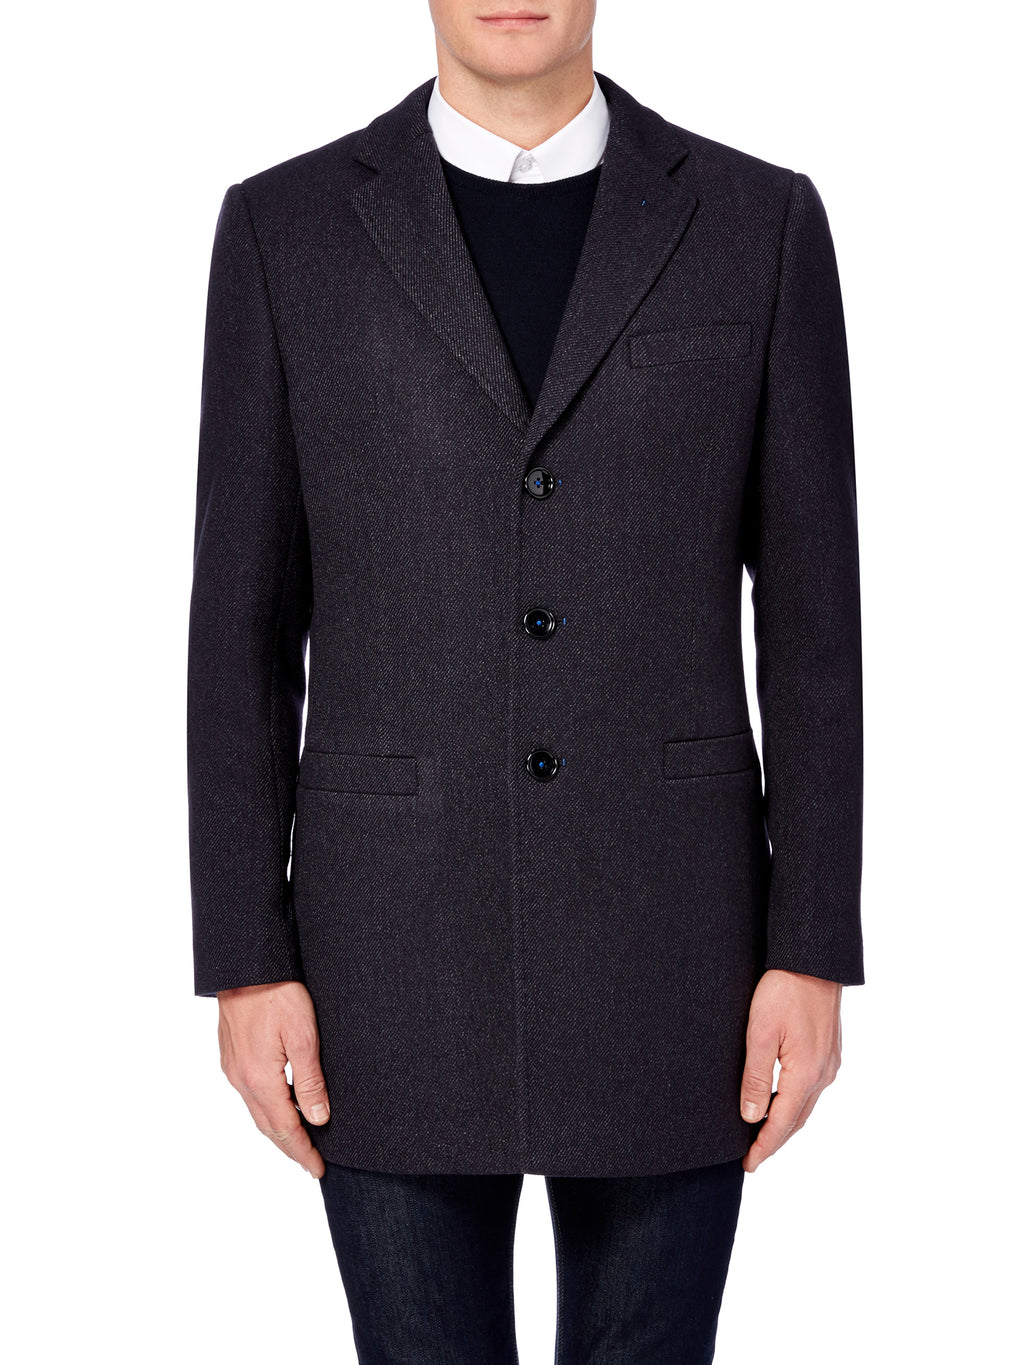 mens jackets by remus uomo navy wool mix